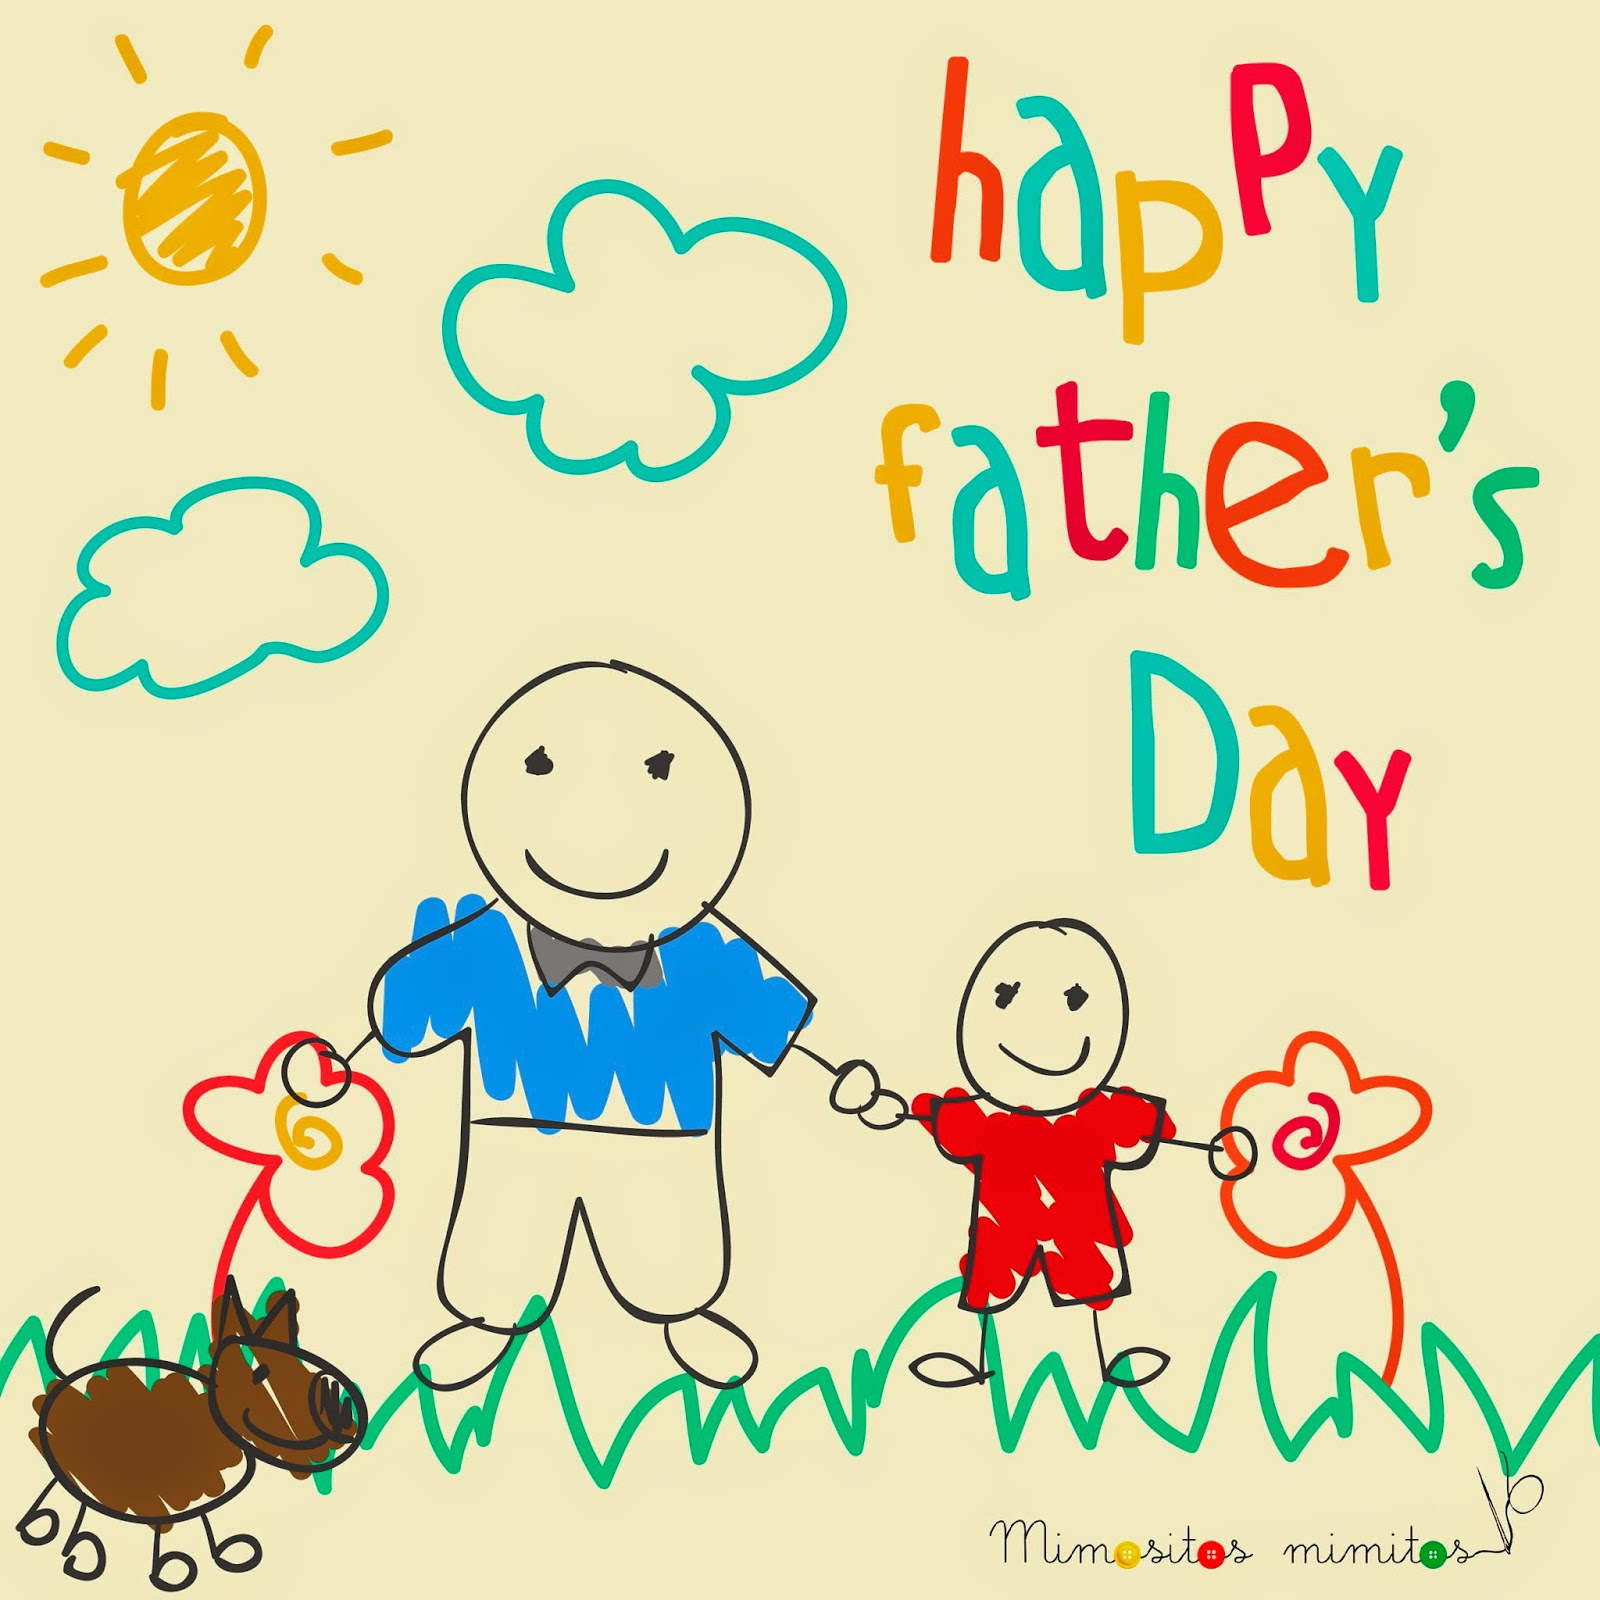 dia del padre father s day dia del pare freebies descargable gratis-english-01